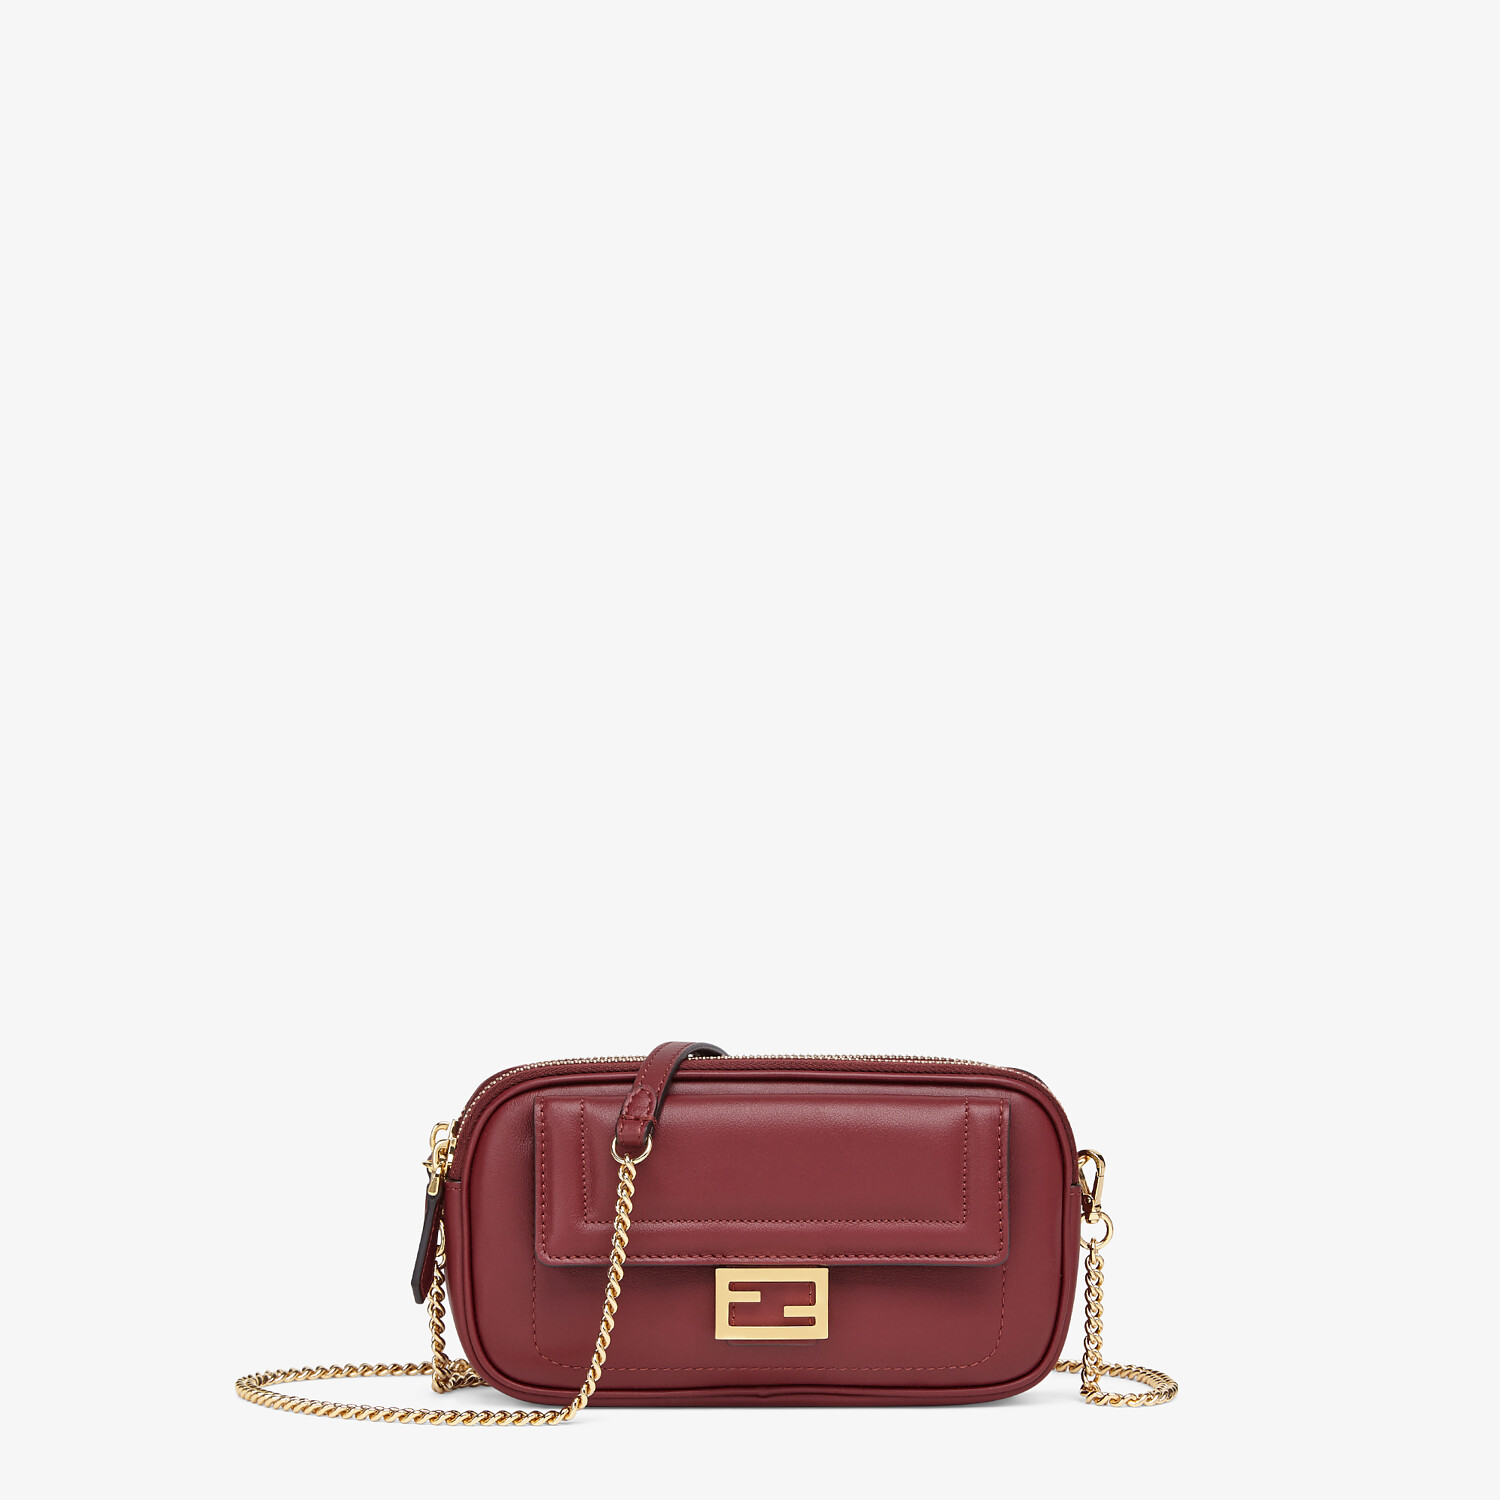 FENDI EASY 2 BAGUETTE - Burgundy leather mini bag - view 1 detail